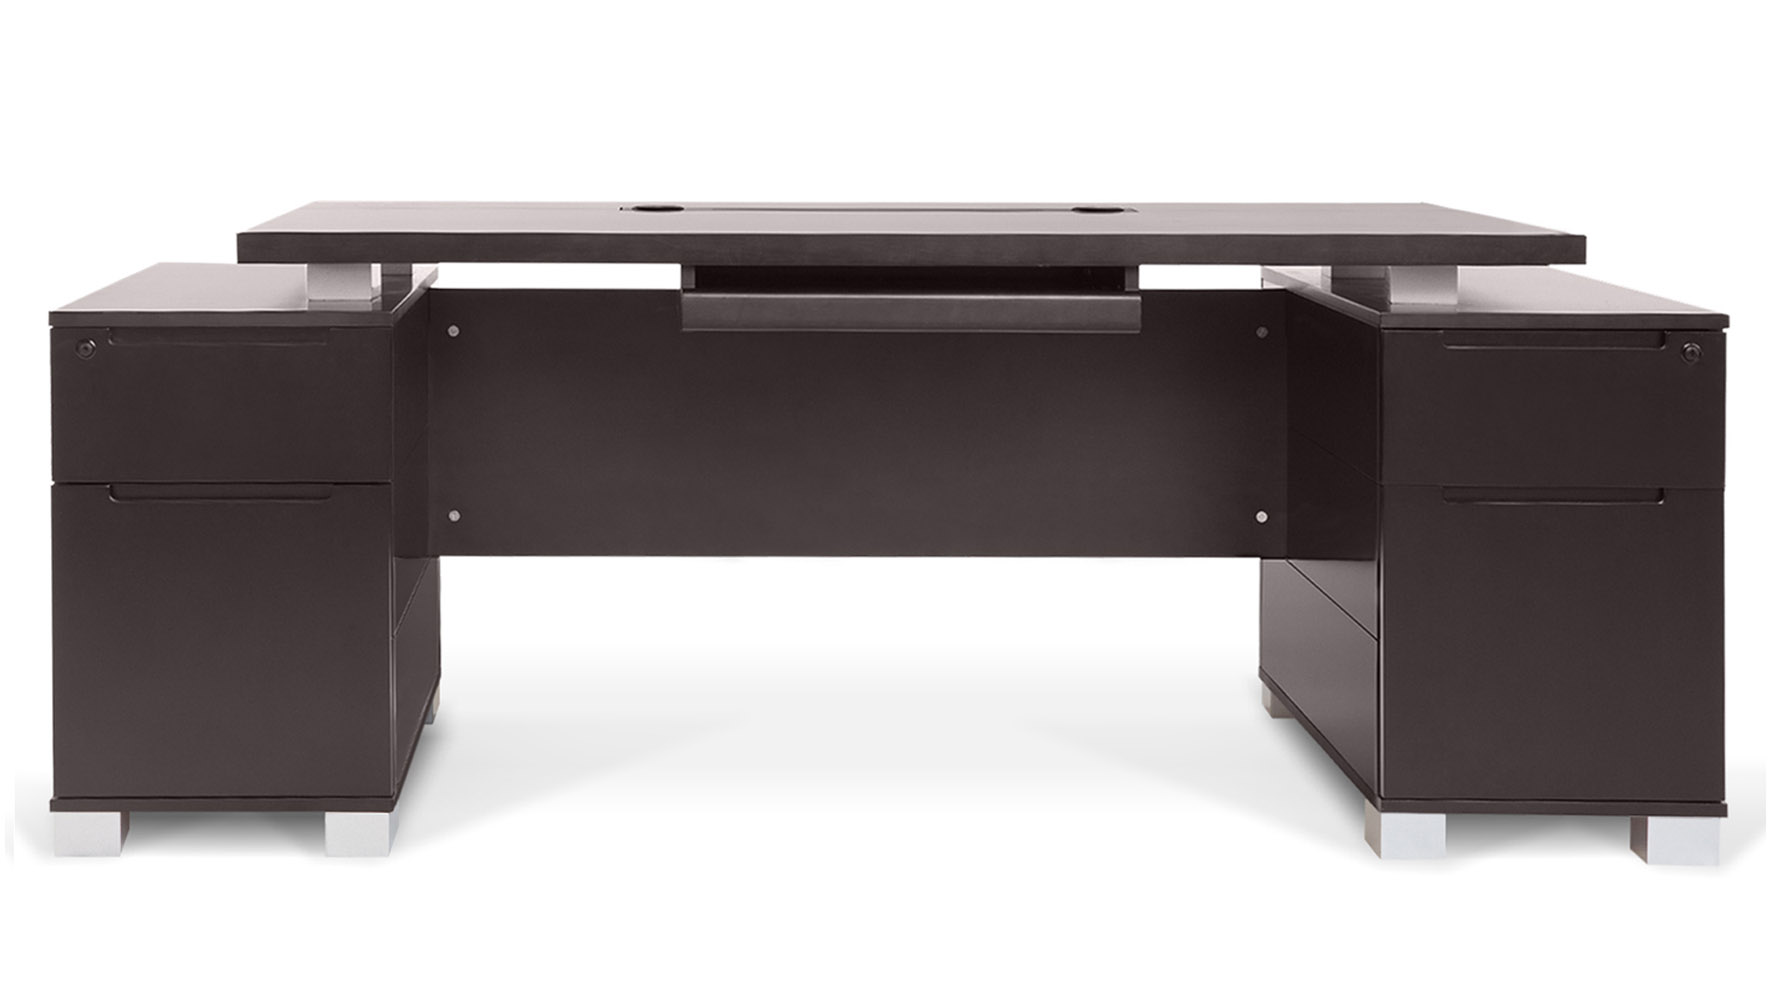 wood office table. Ford Executive Modern Desk With Filing Cabinets - Dark Wood Finish | Zuri Furniture Office Table B